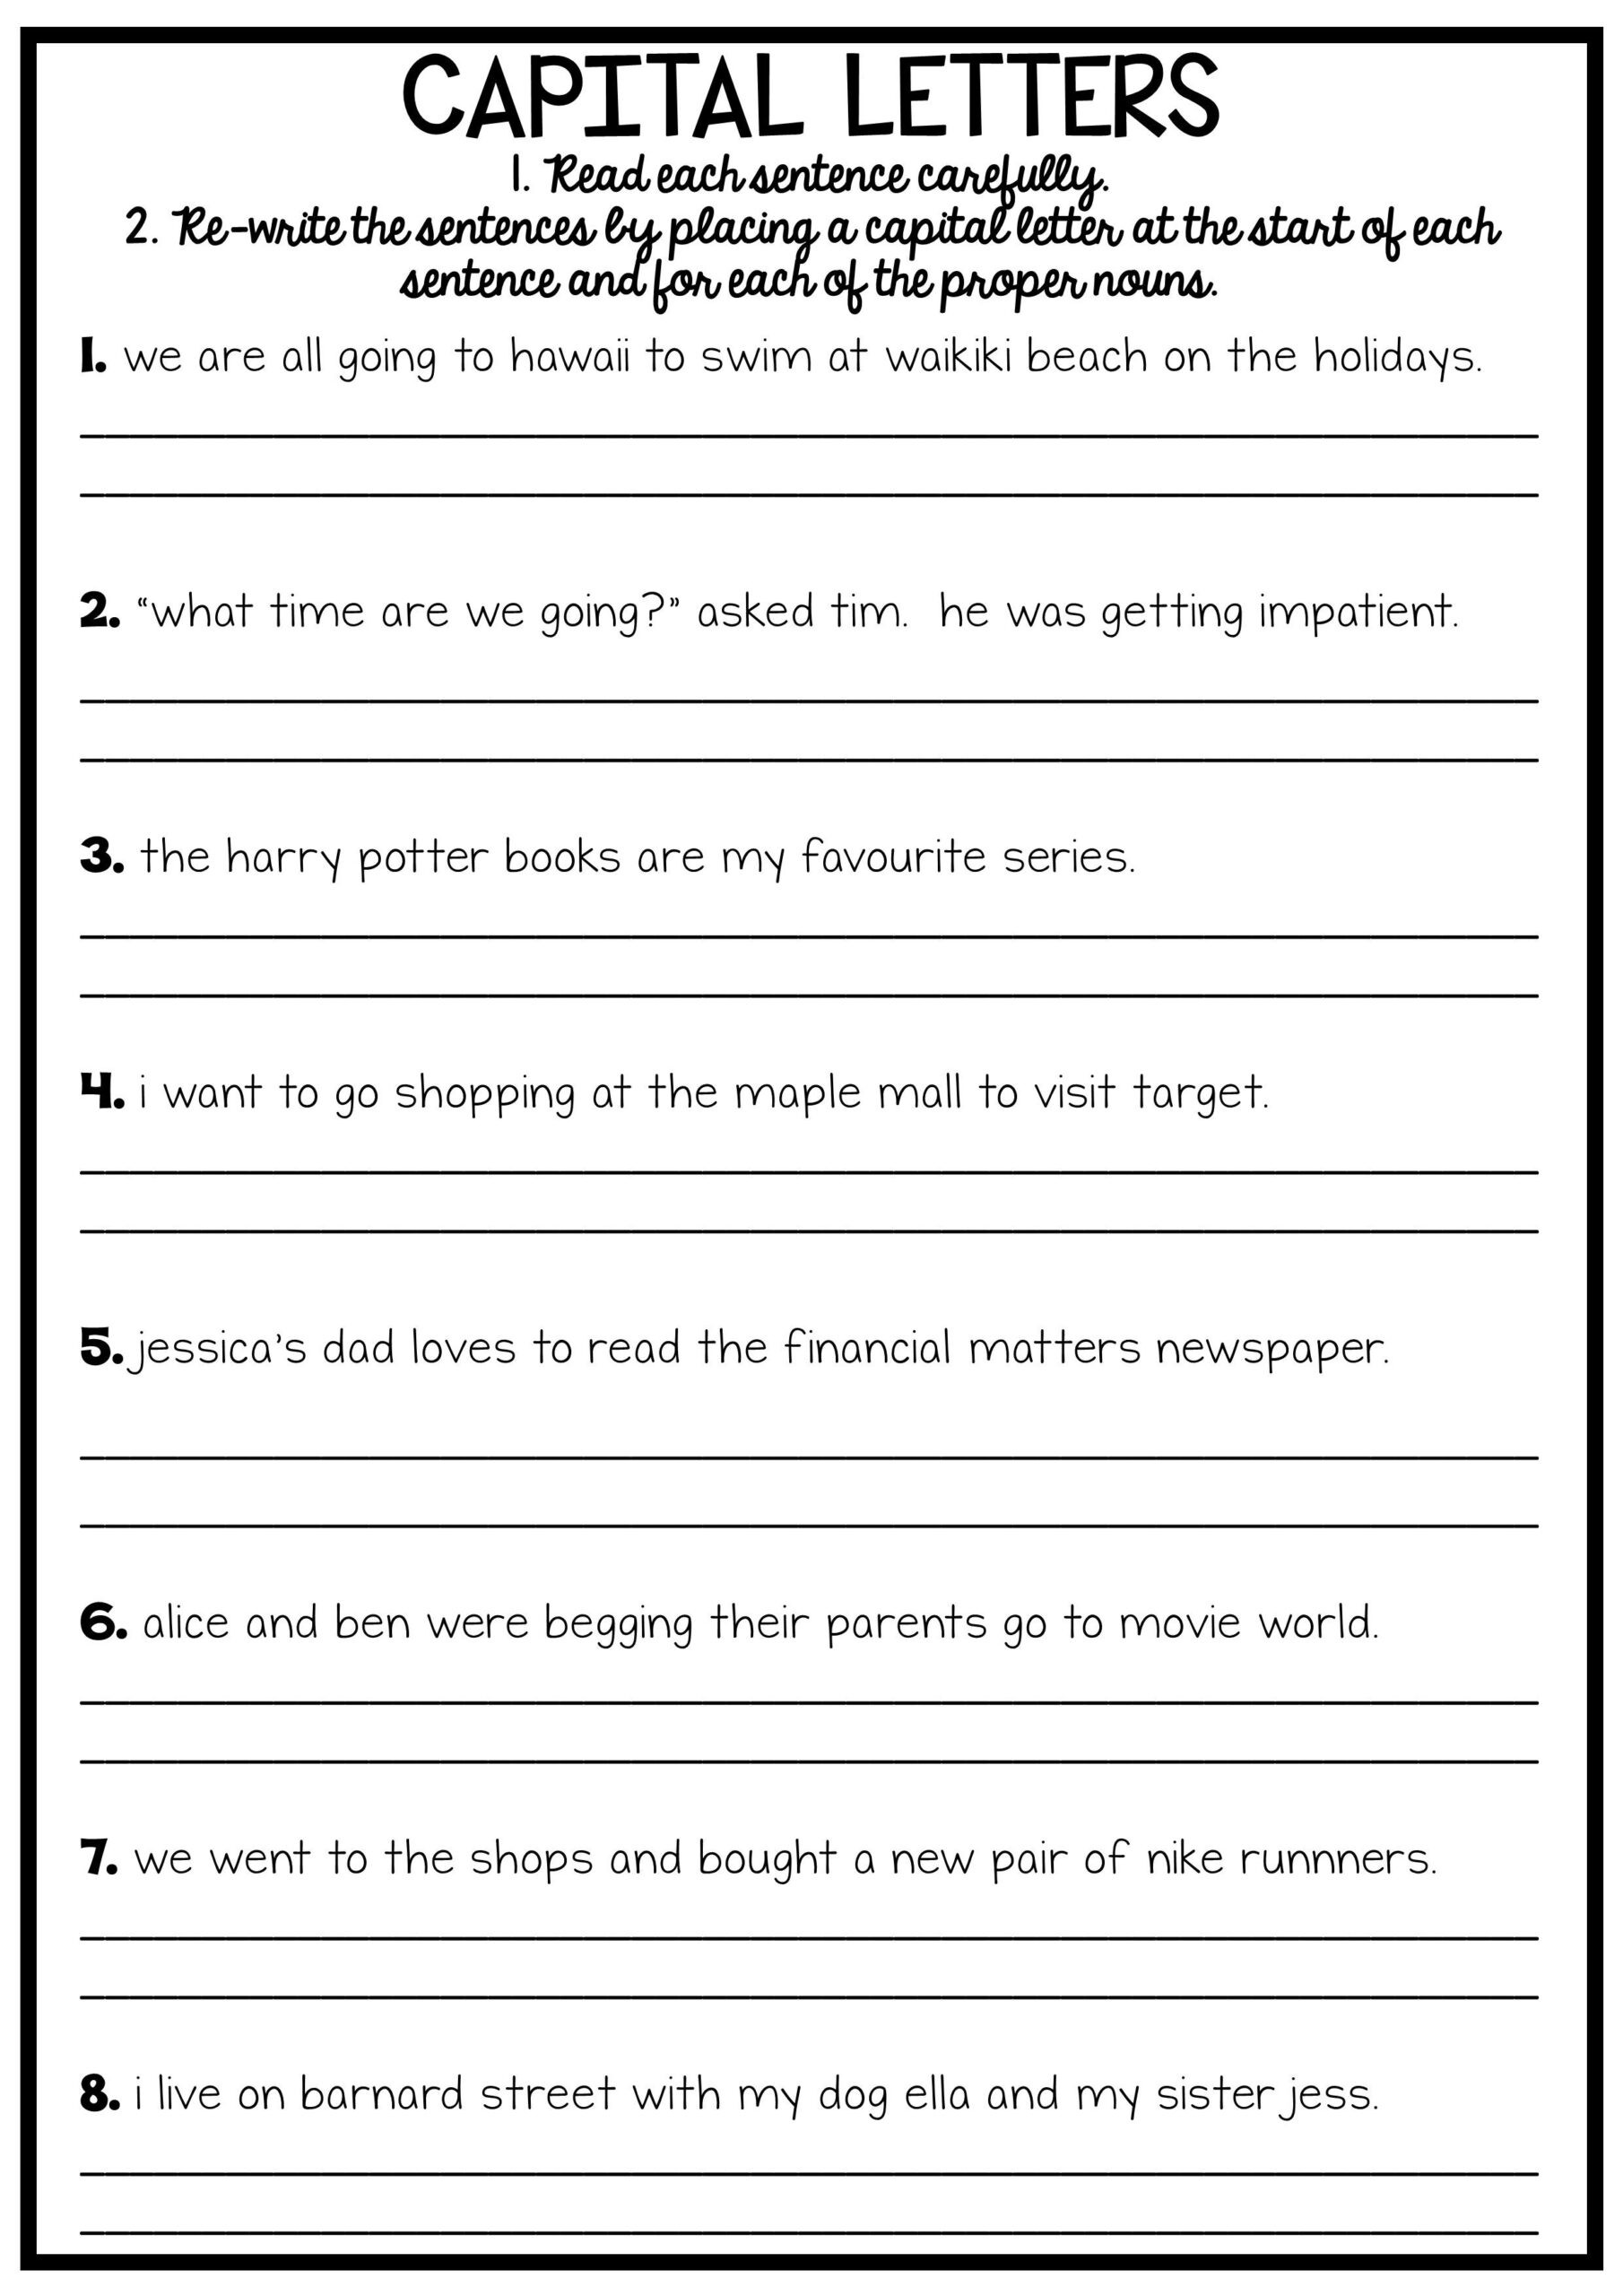 3rd Grade Editing Worksheets Grade 2 Camouflage Animals Coloring Pages English Grammar